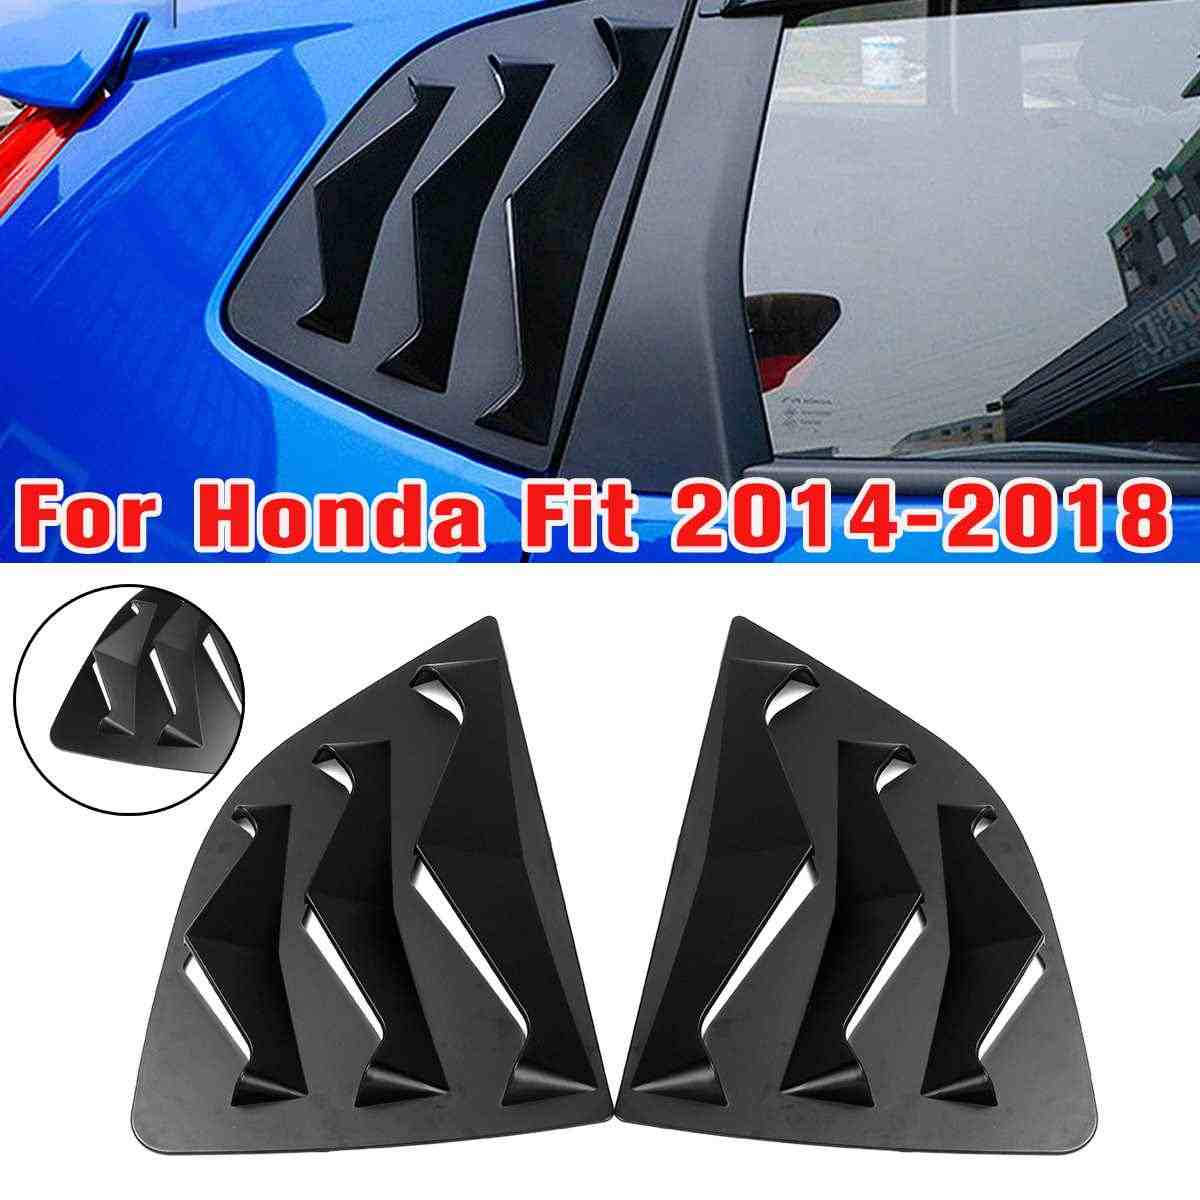 Matte Black Rear Quarter Side Vent Window Louver For Honda Fit 2014-2018 Louvers Scoop Cover Car Styling Sticker